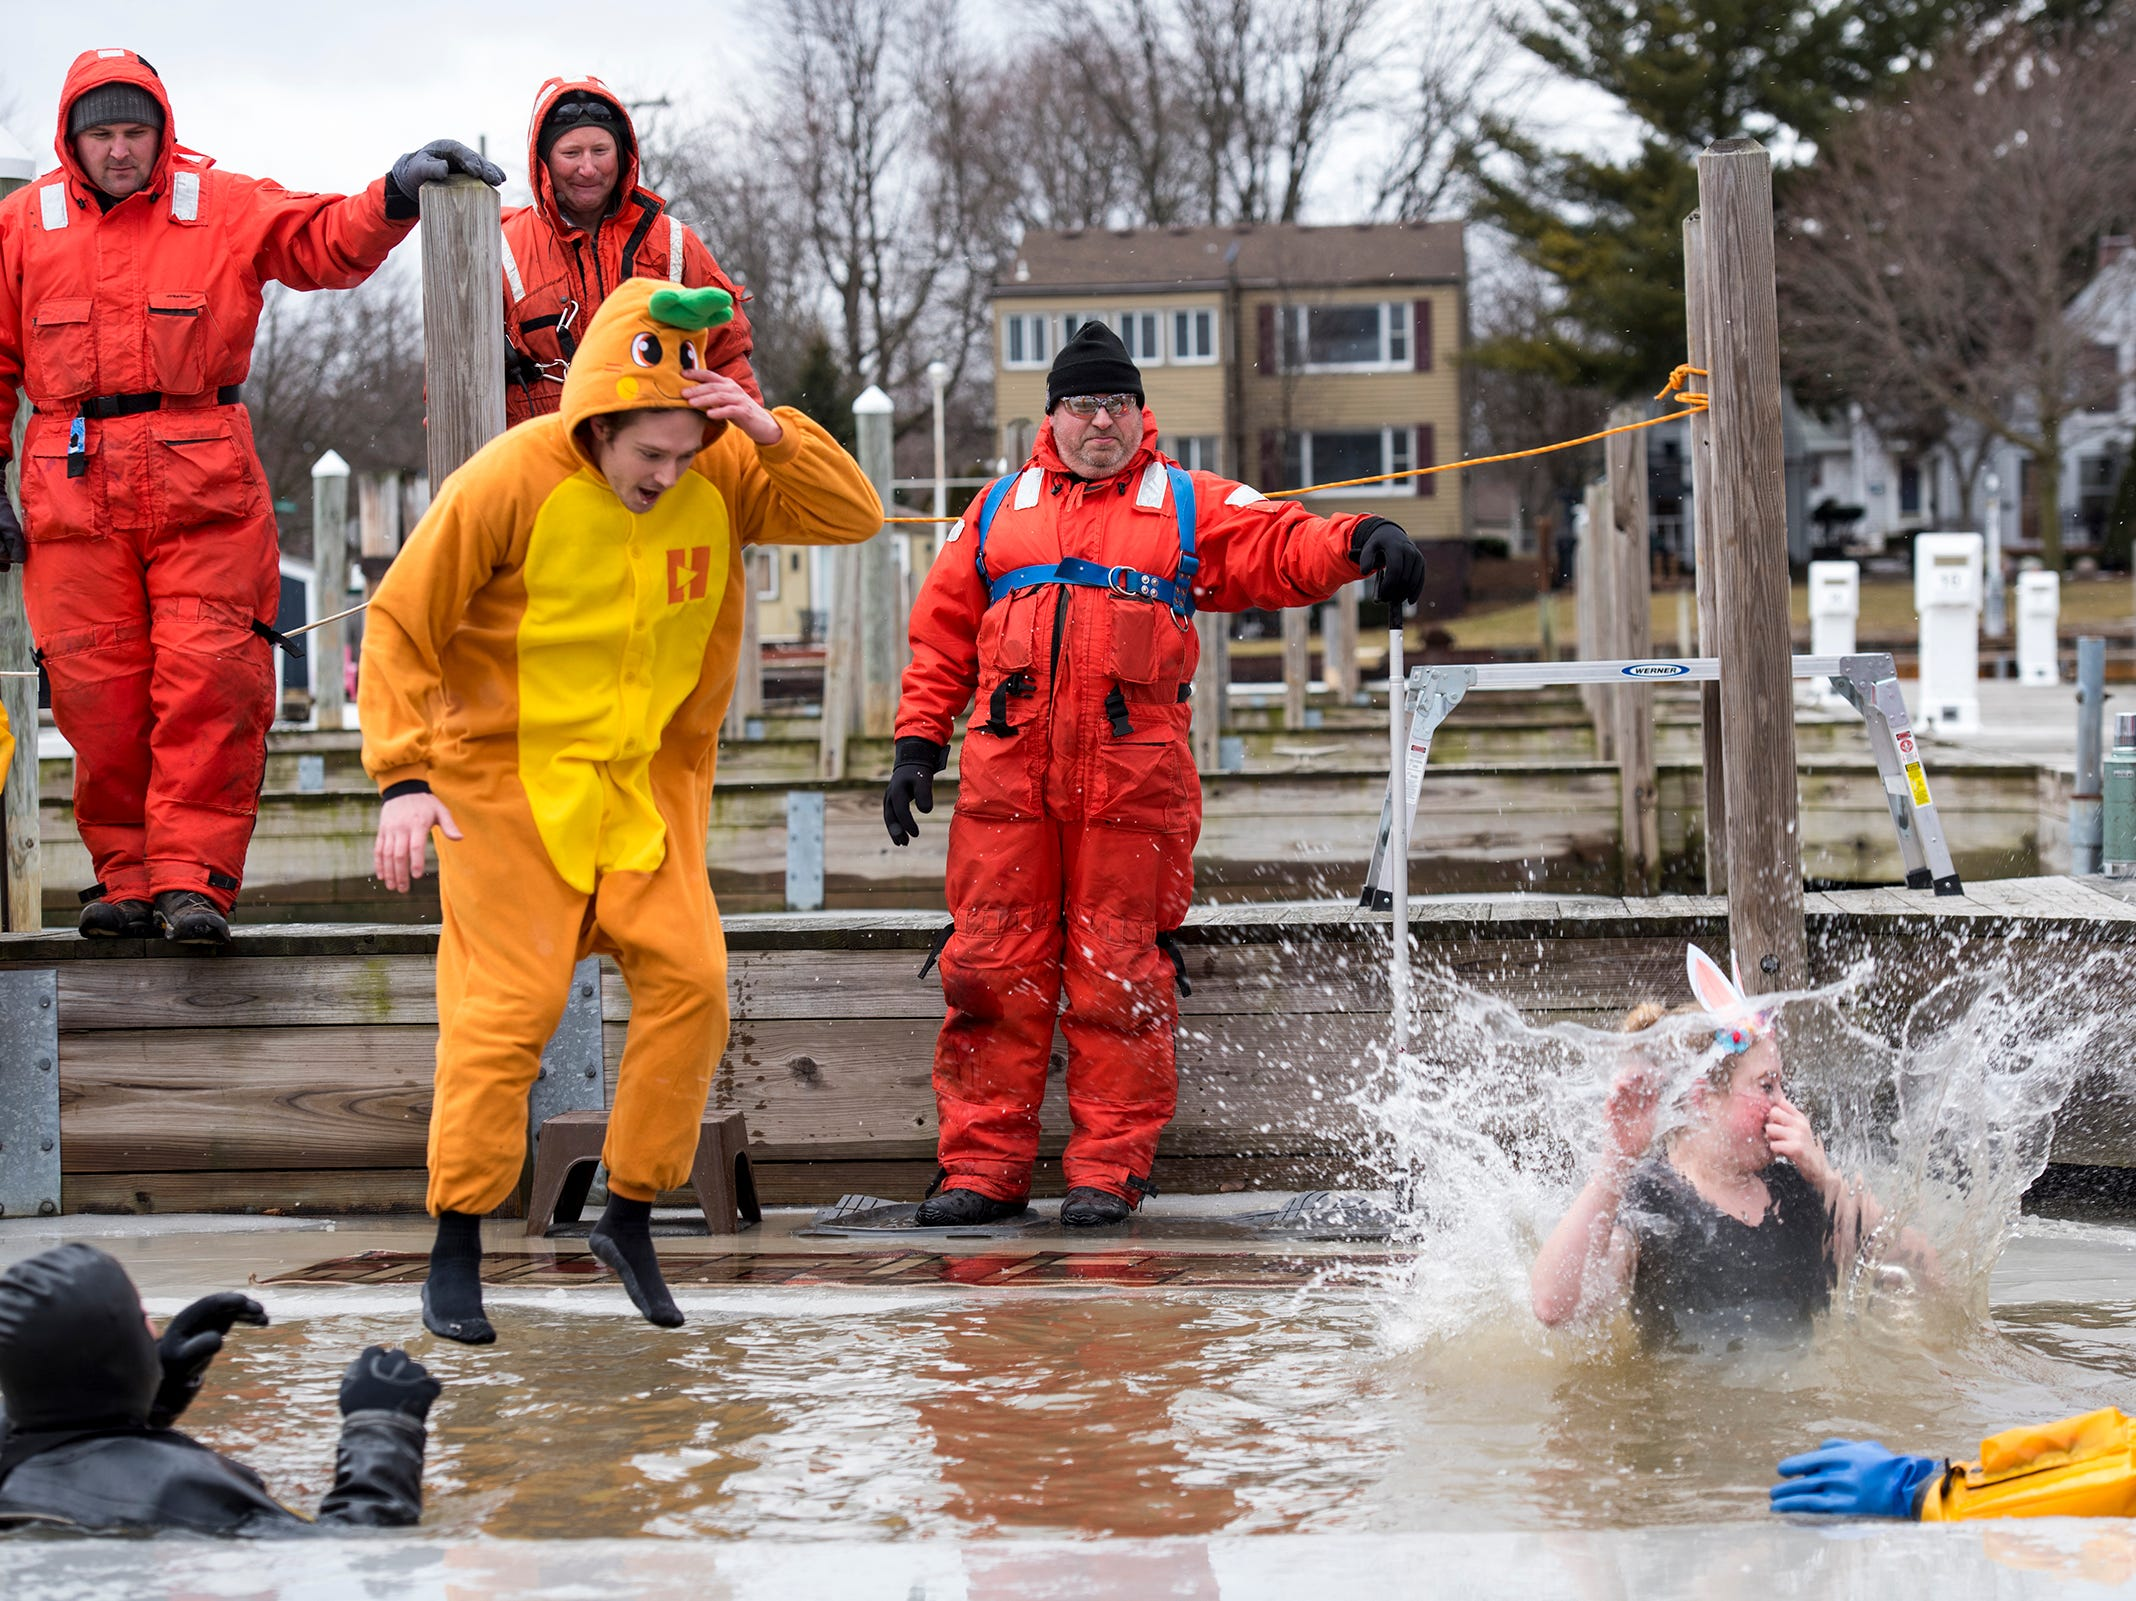 Brianna Thurston, right, and Bryan Nowak, dressed as a rabbit and a carrot, plunge into the water in the St. Clair Boat Harbor Sunday, Feb. 24, 2019 during the annual St. Clair Polar Plunge.